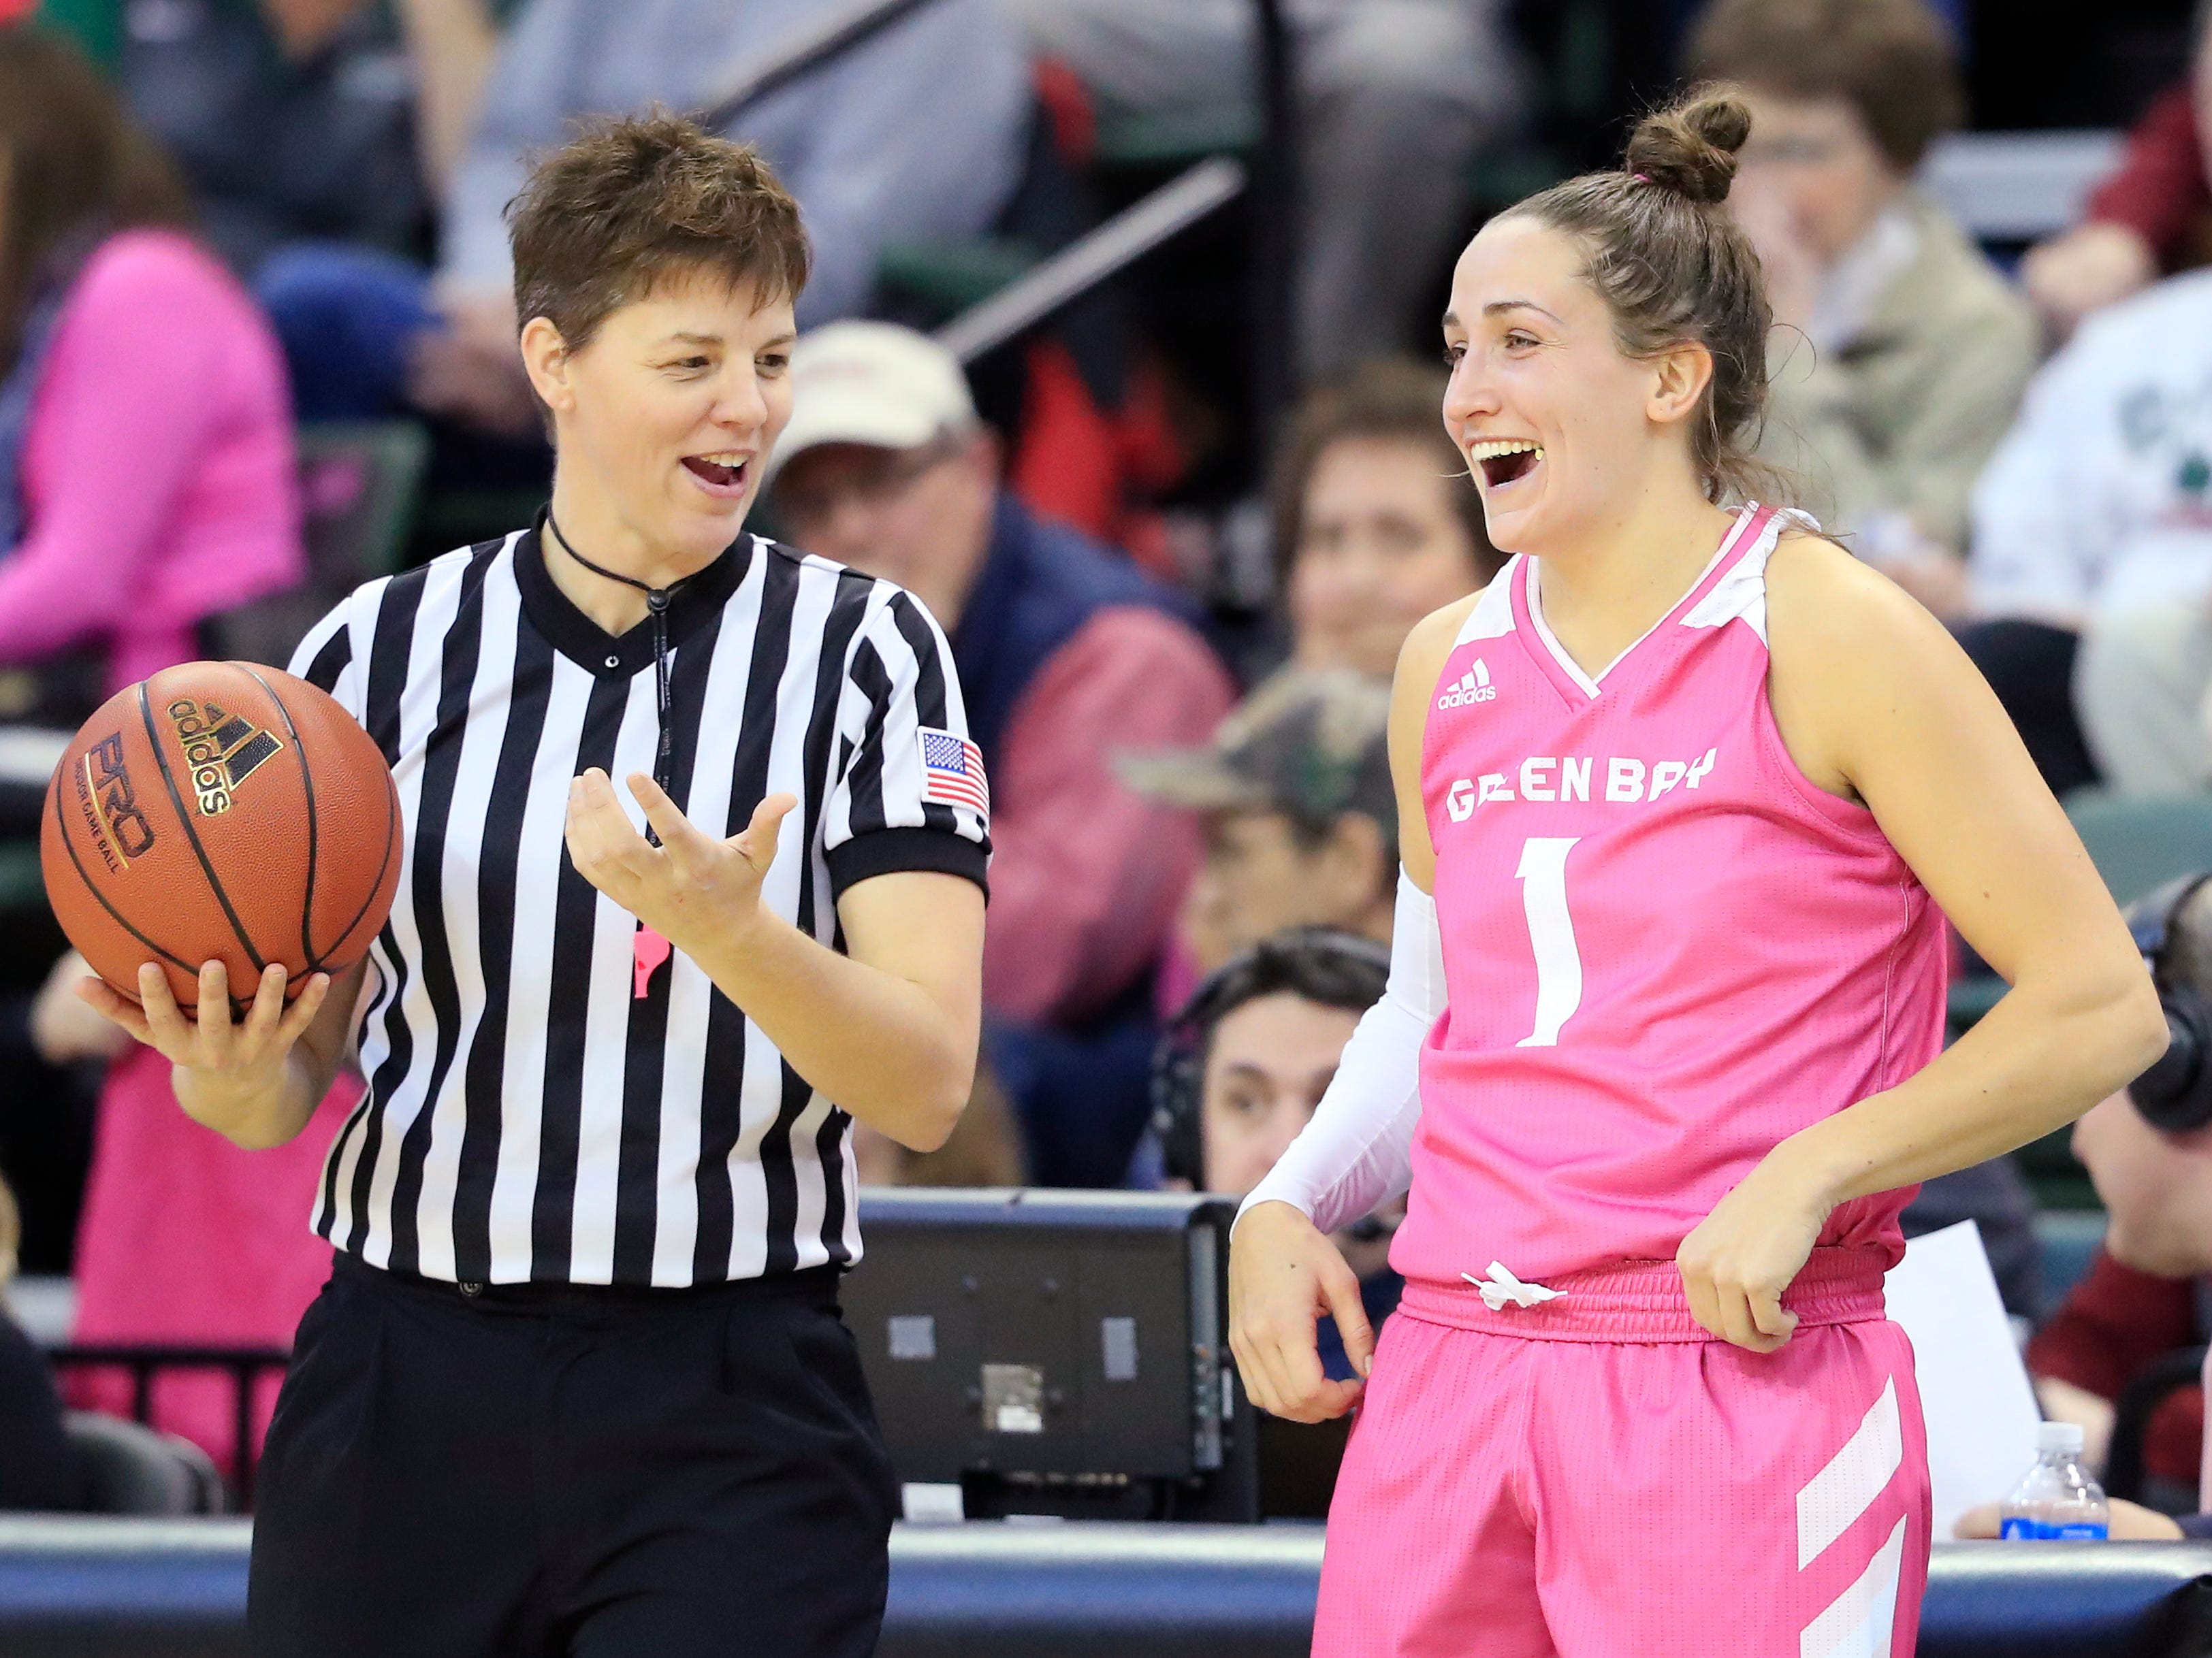 Green Bay Phoenix guard Jen Wellnitz (1) laughs with a referee at the end of a timeout against the Wright State Raiders in a Horizon League women's basketball game at the Kress Center on Saturday, February 9, 2019 in Green Bay, Wis.